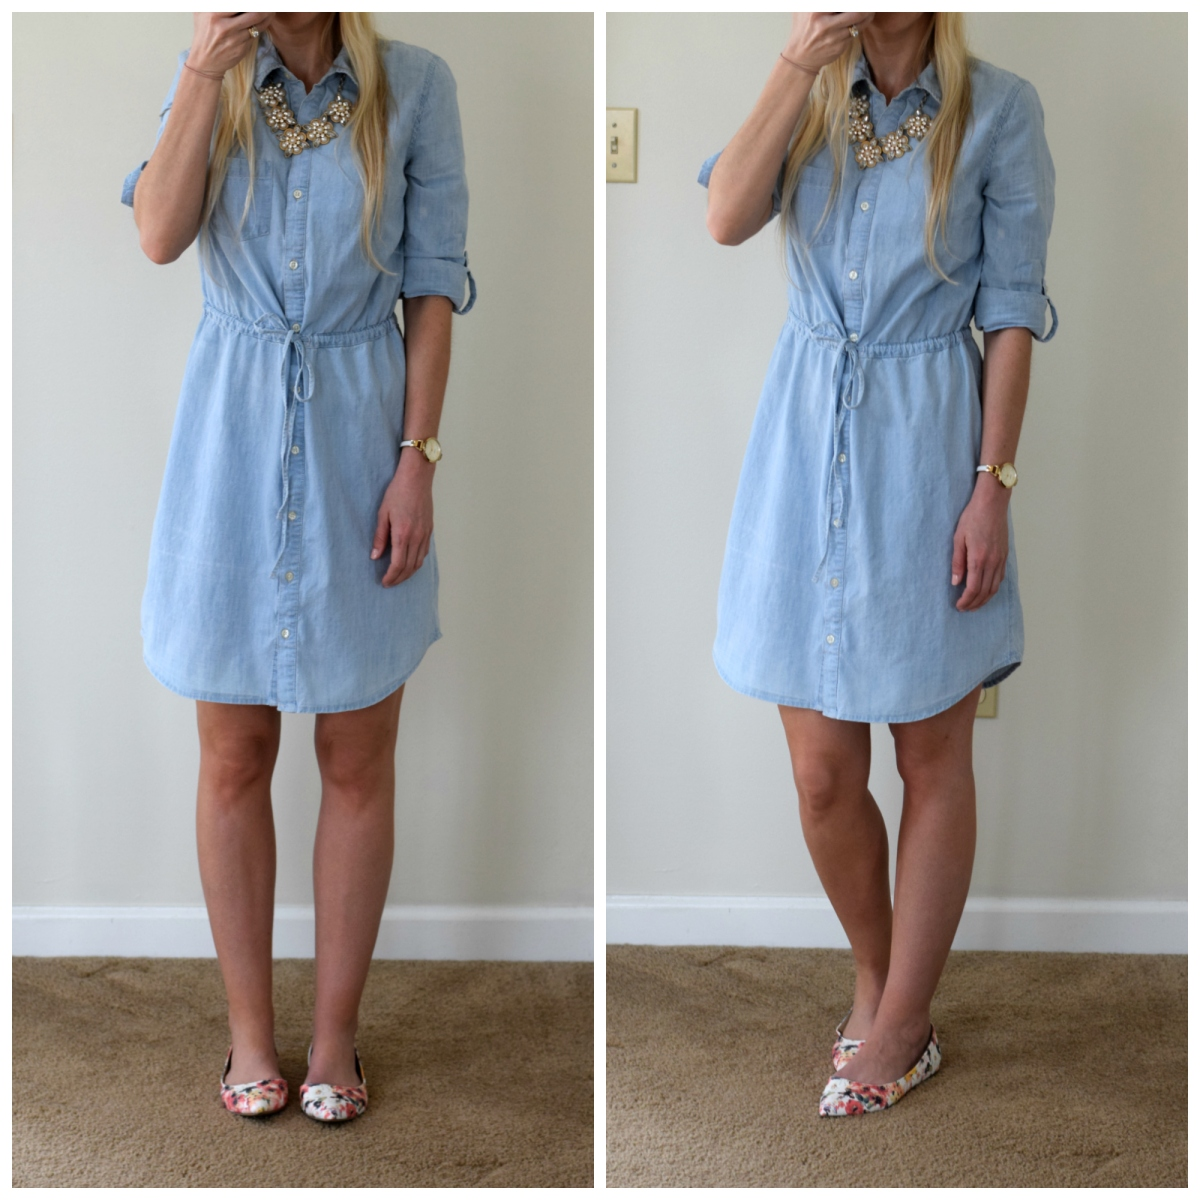 chambray and floral for spring!